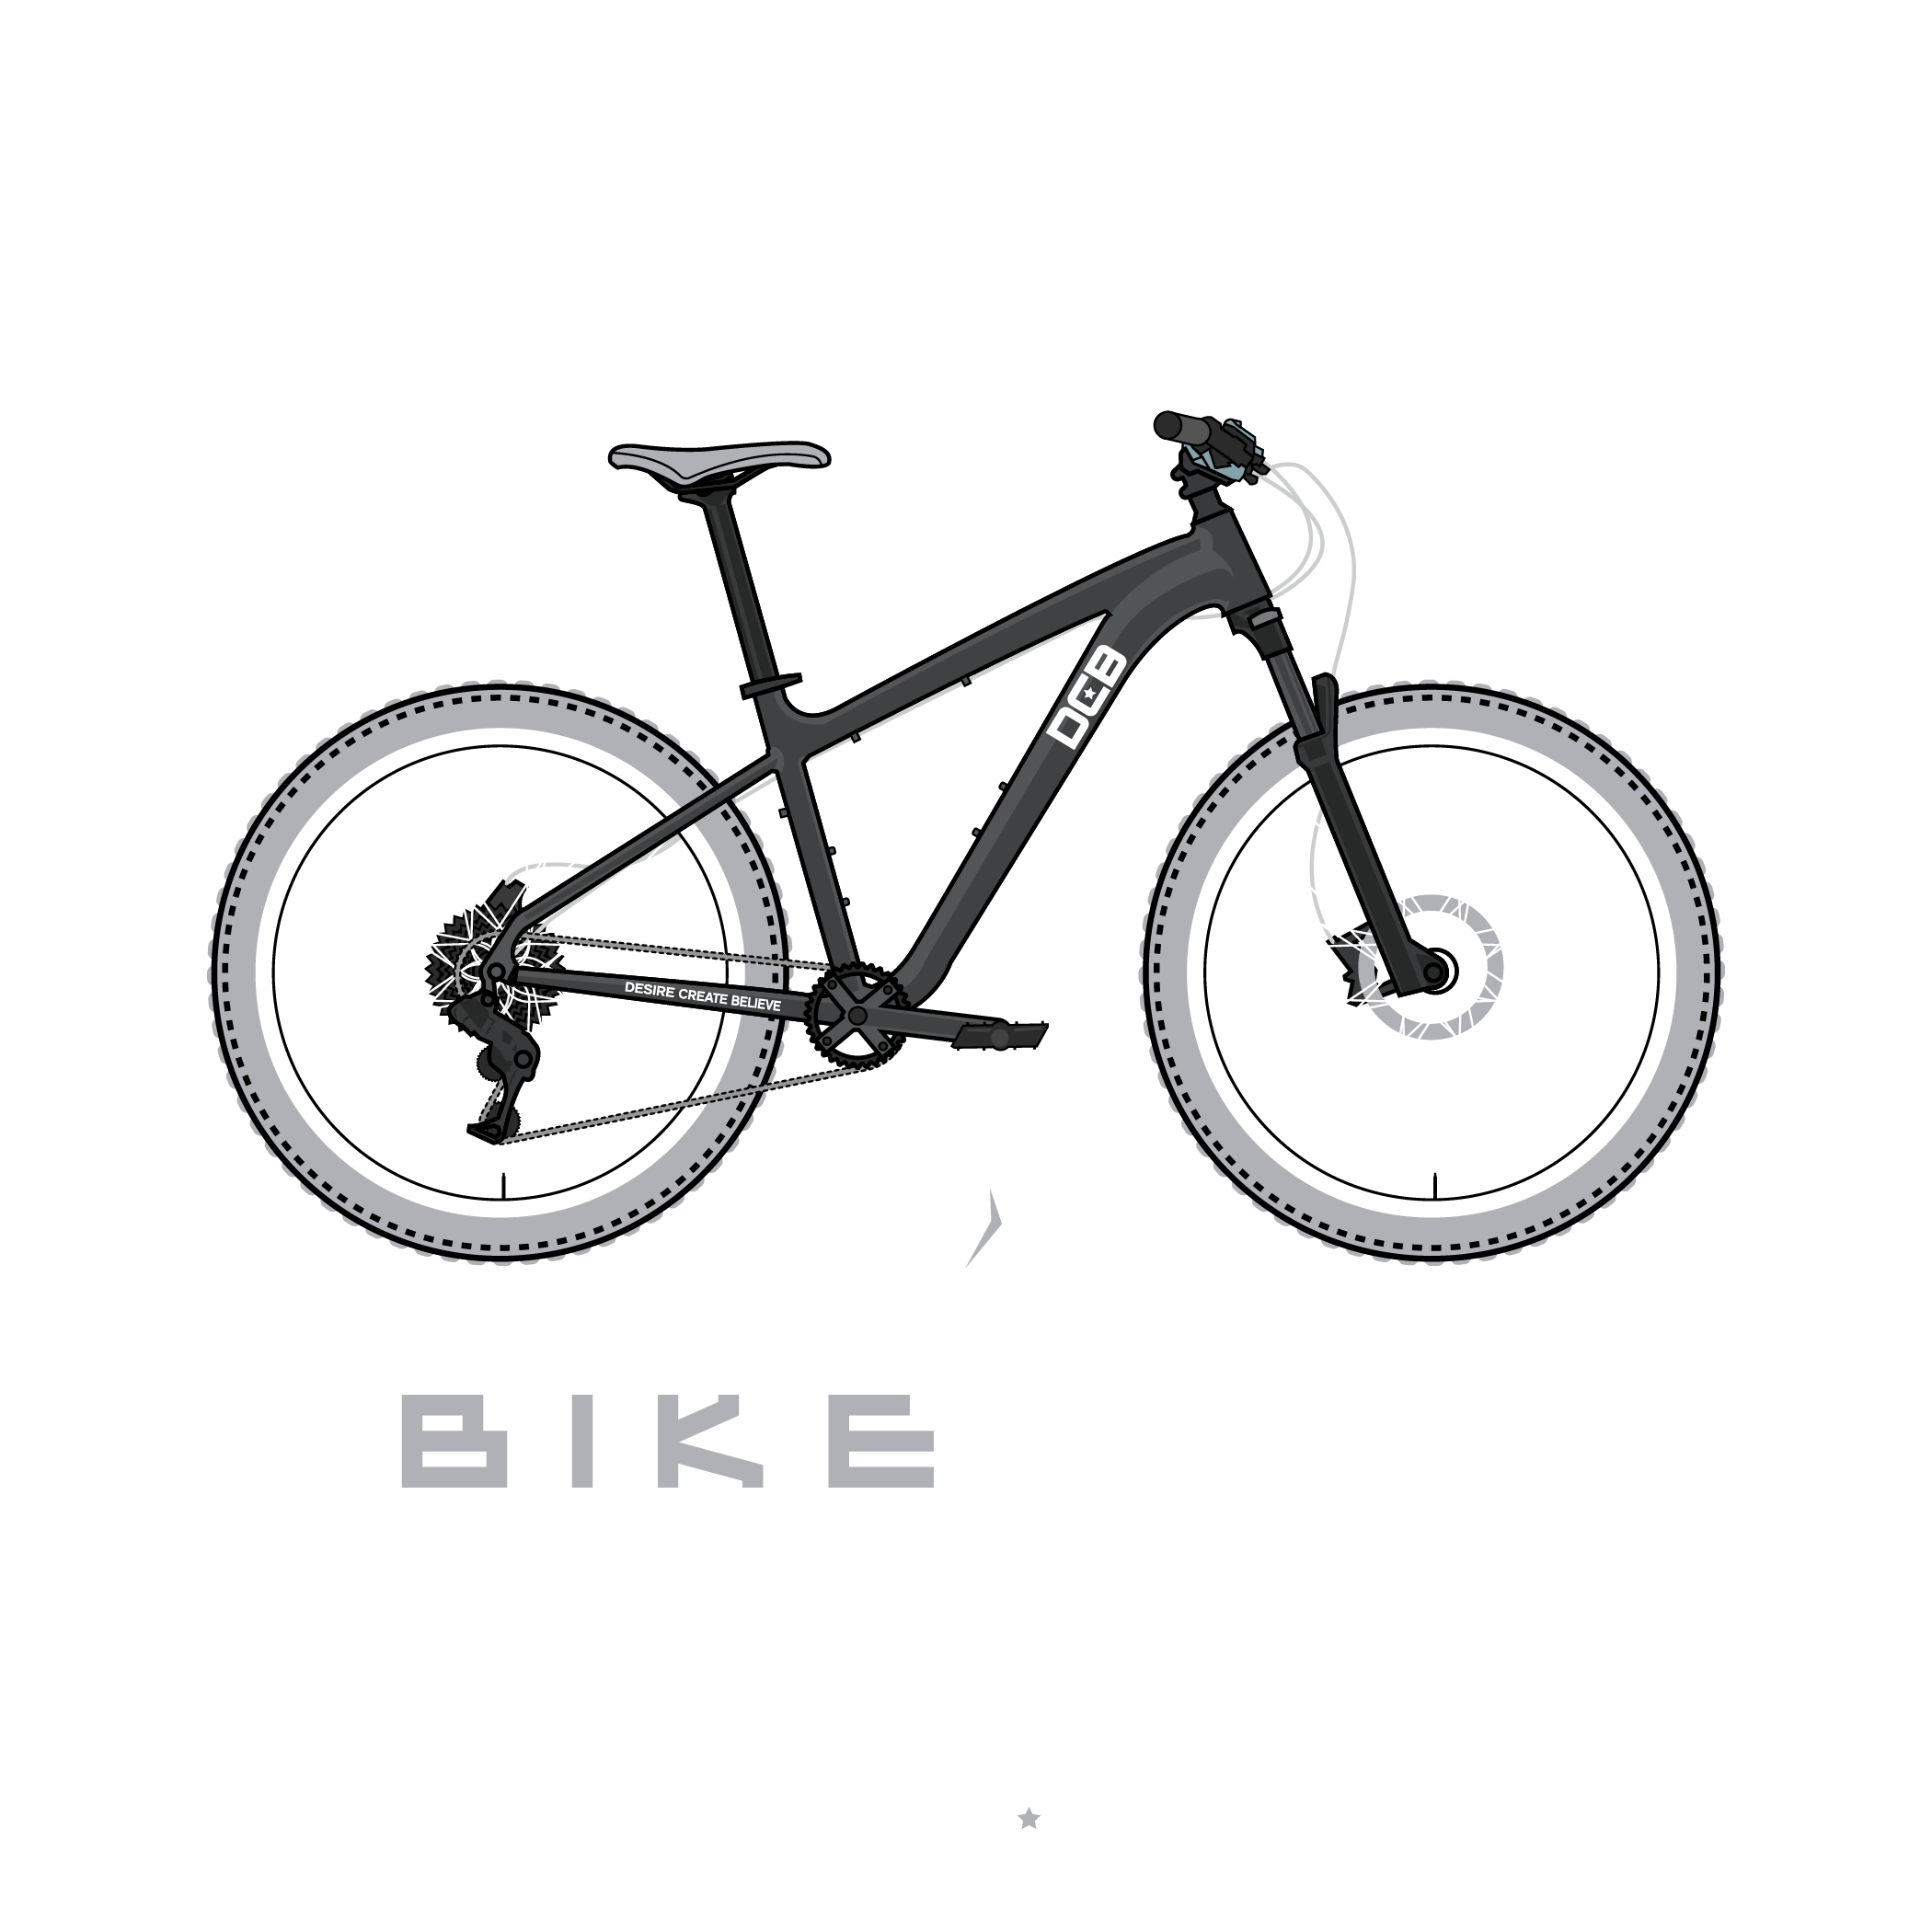 Bike Life Hardtail Urban.png